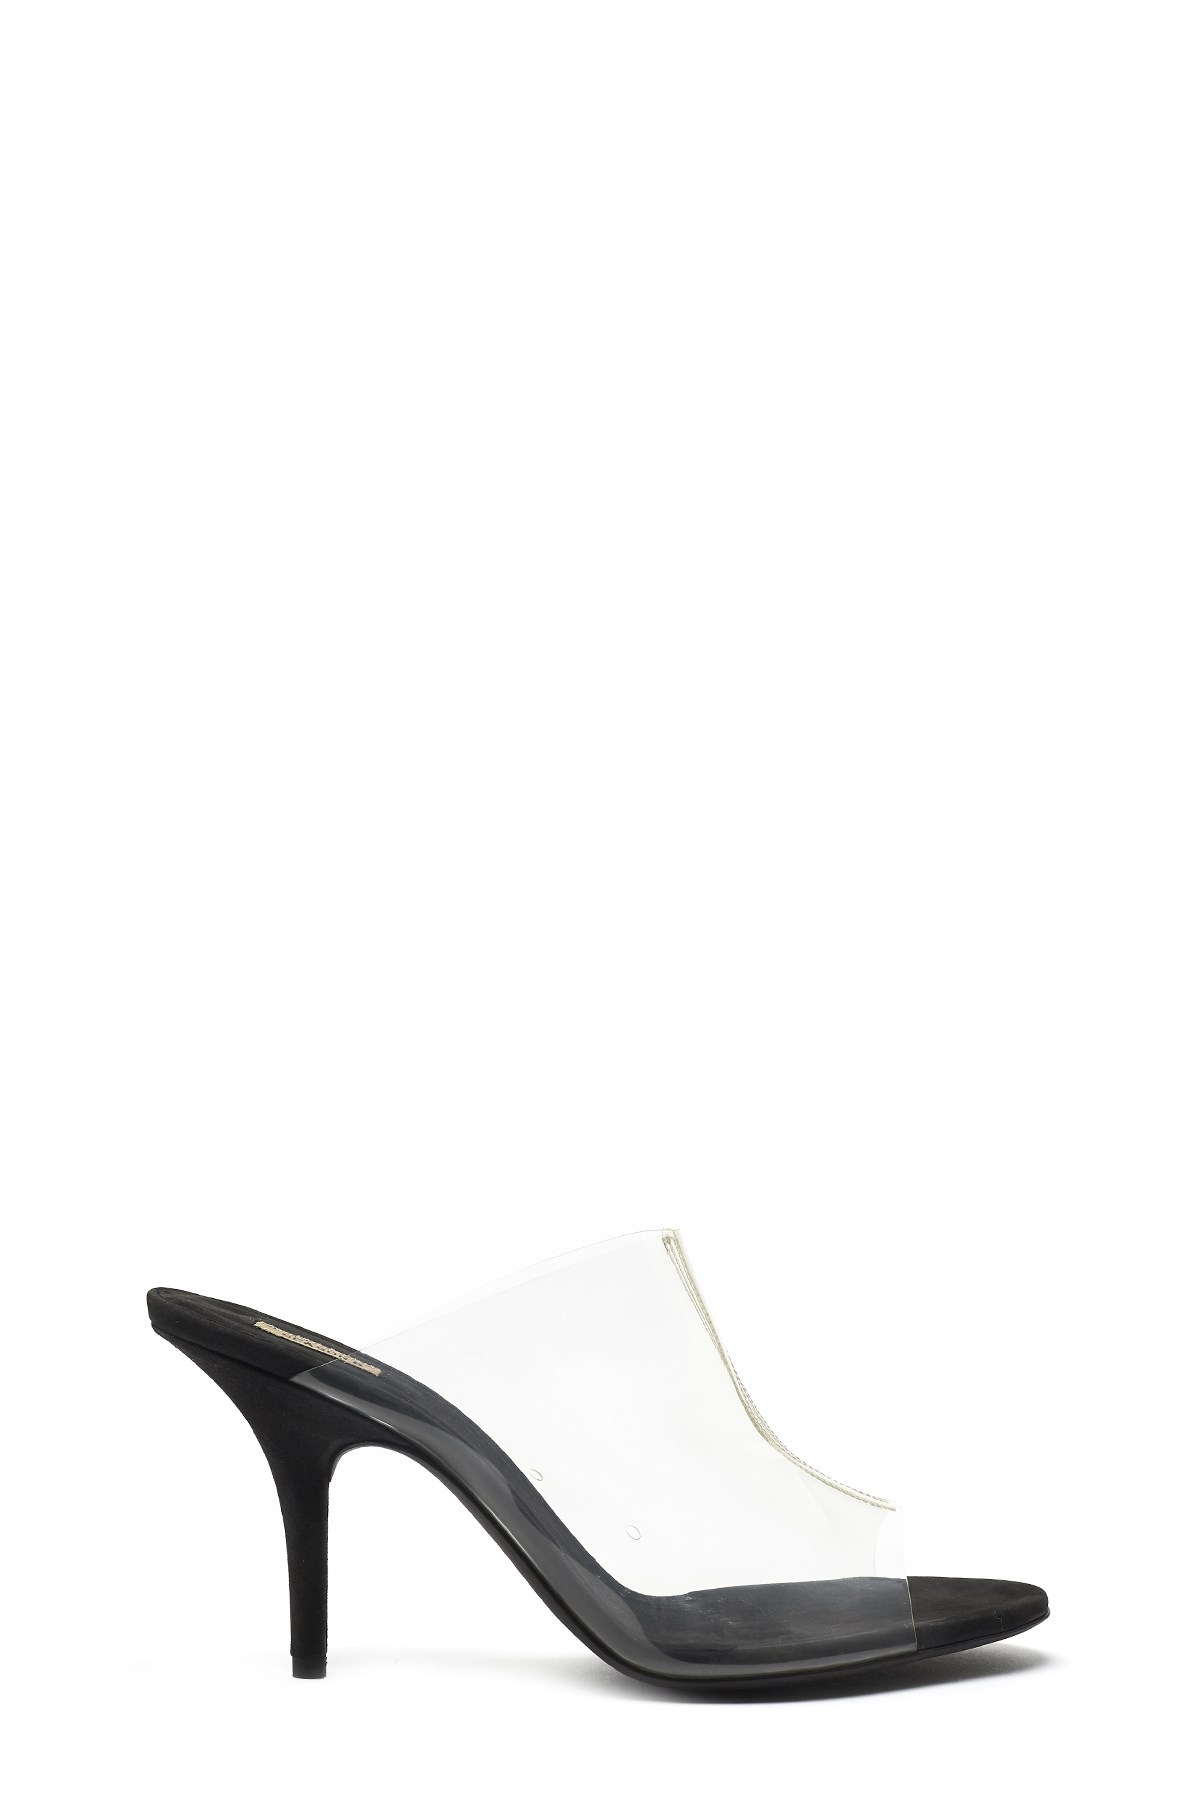 174659d125 yeezy pvc mules available on julian-fashion.com - 62438